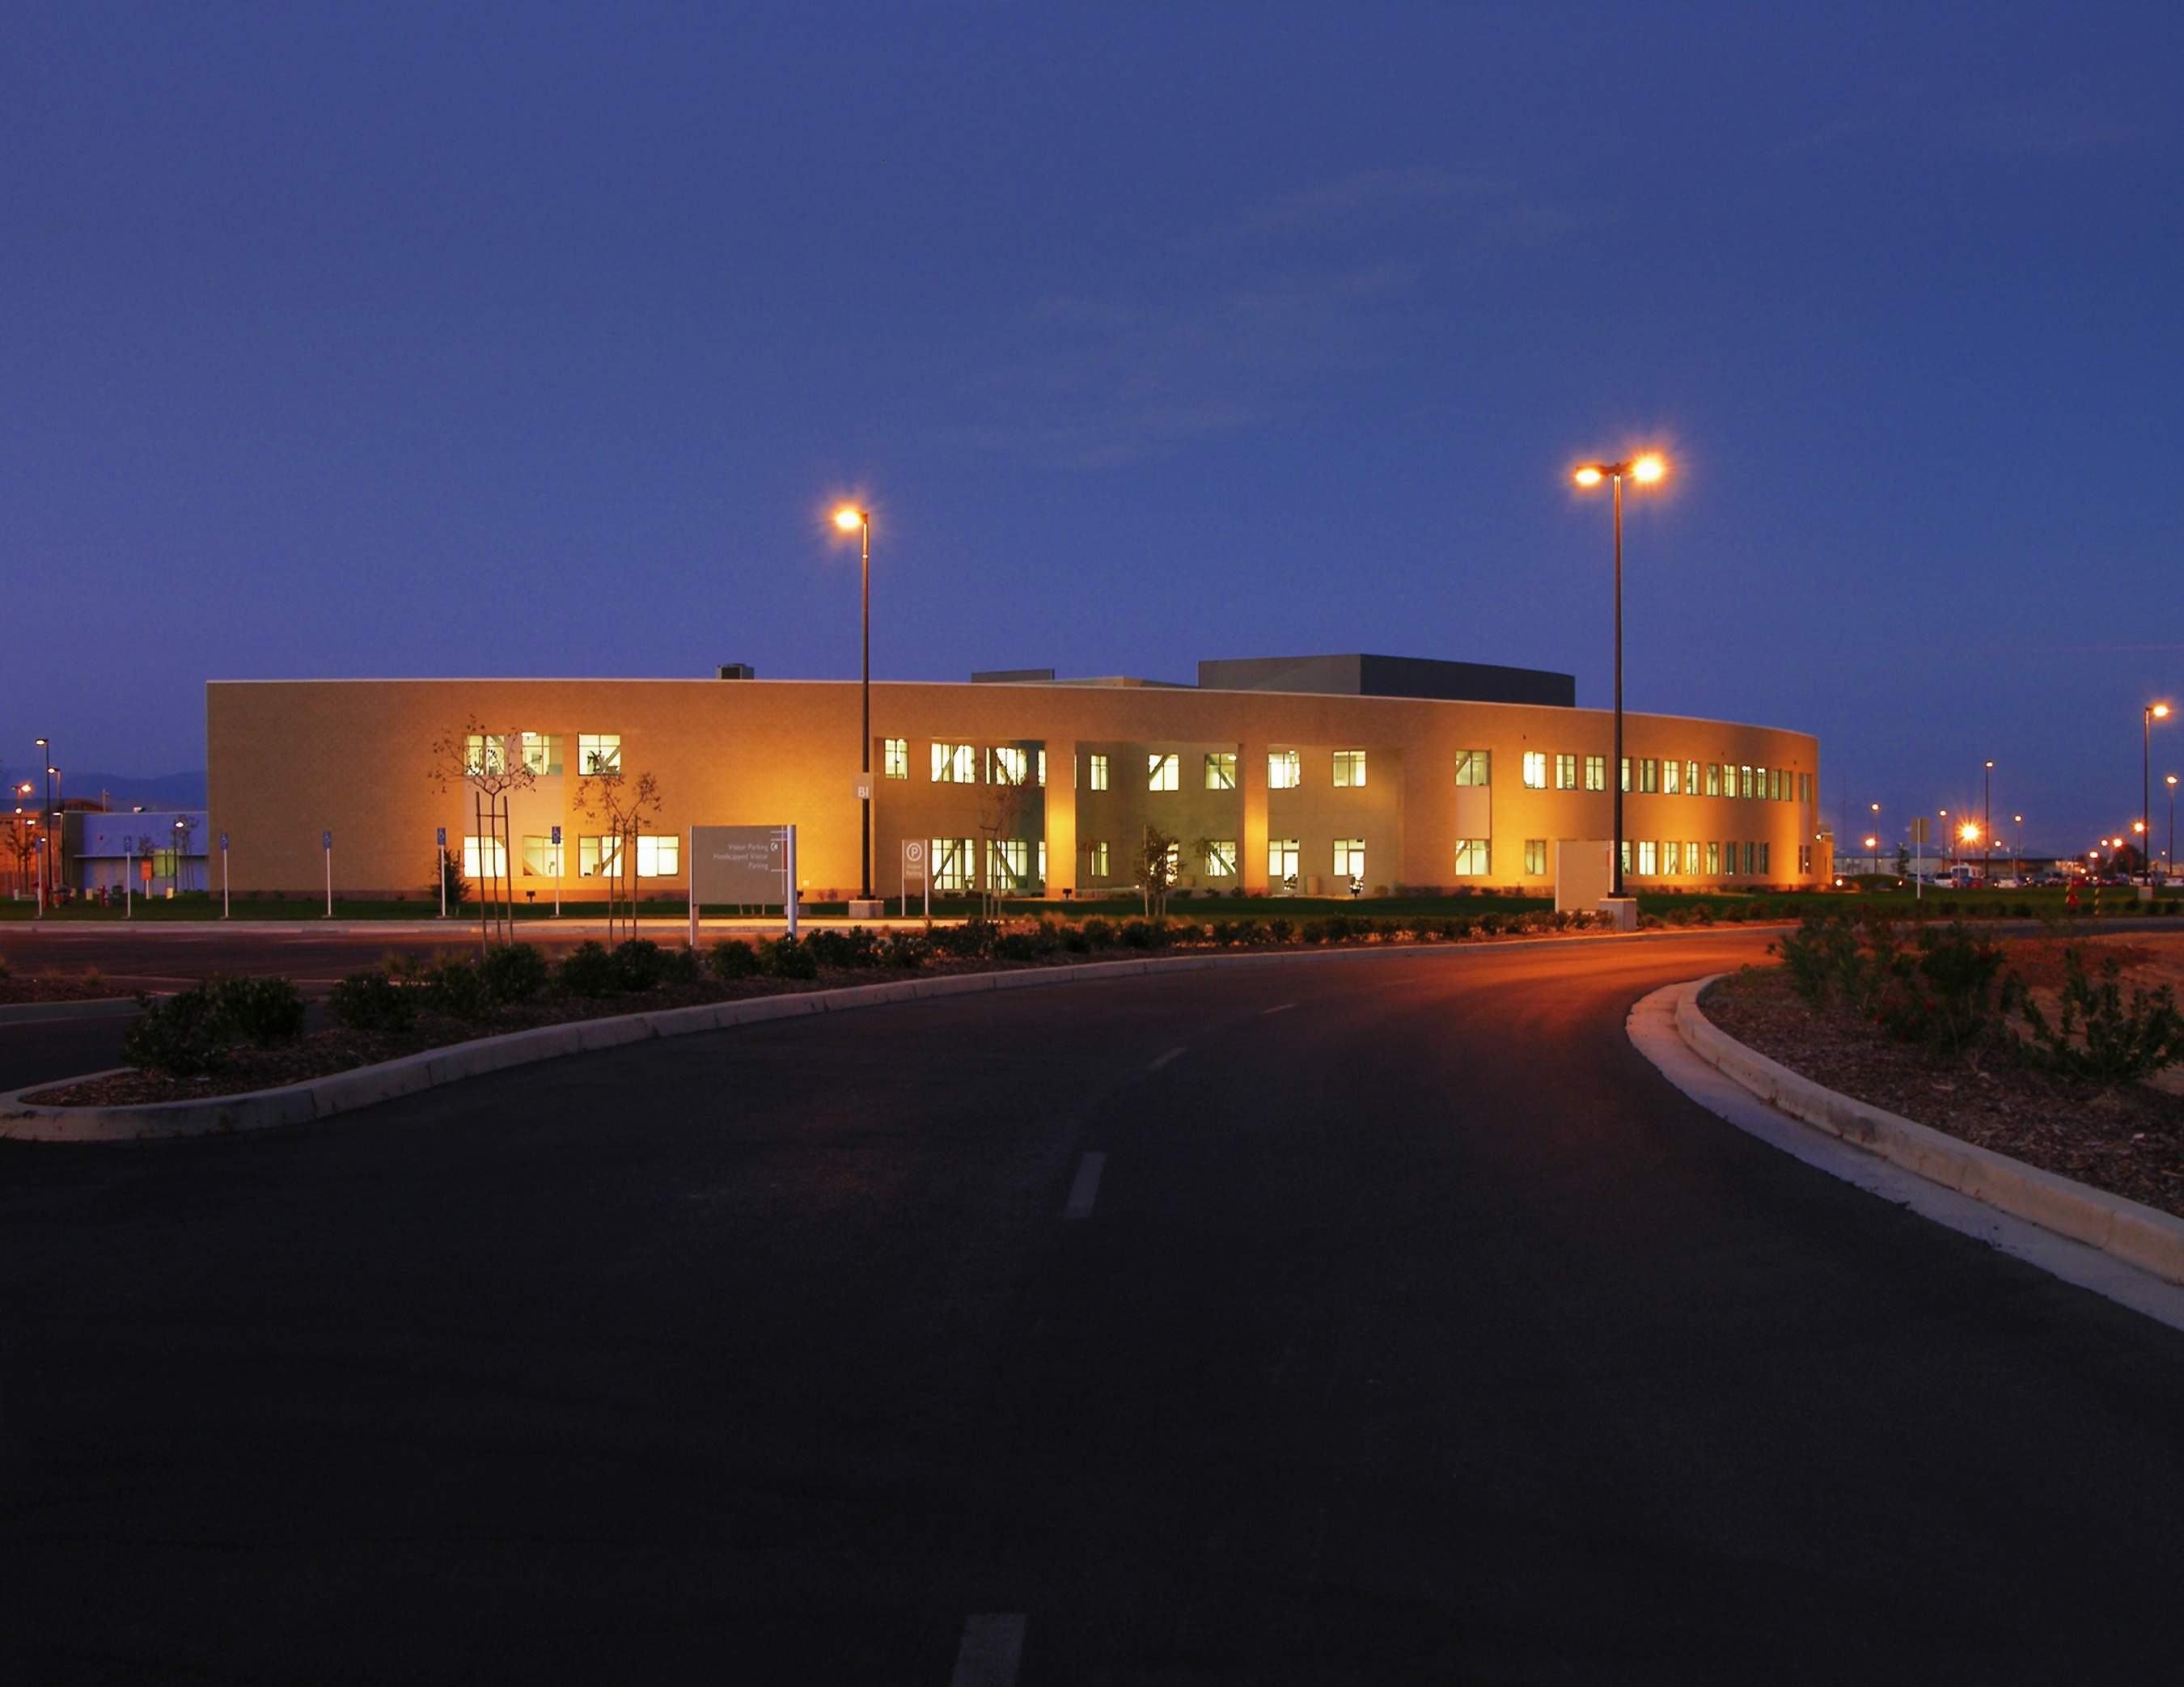 Coalinga State (1500-Bed) Mental Hospital for Violent Offenders (Sexual Predators)